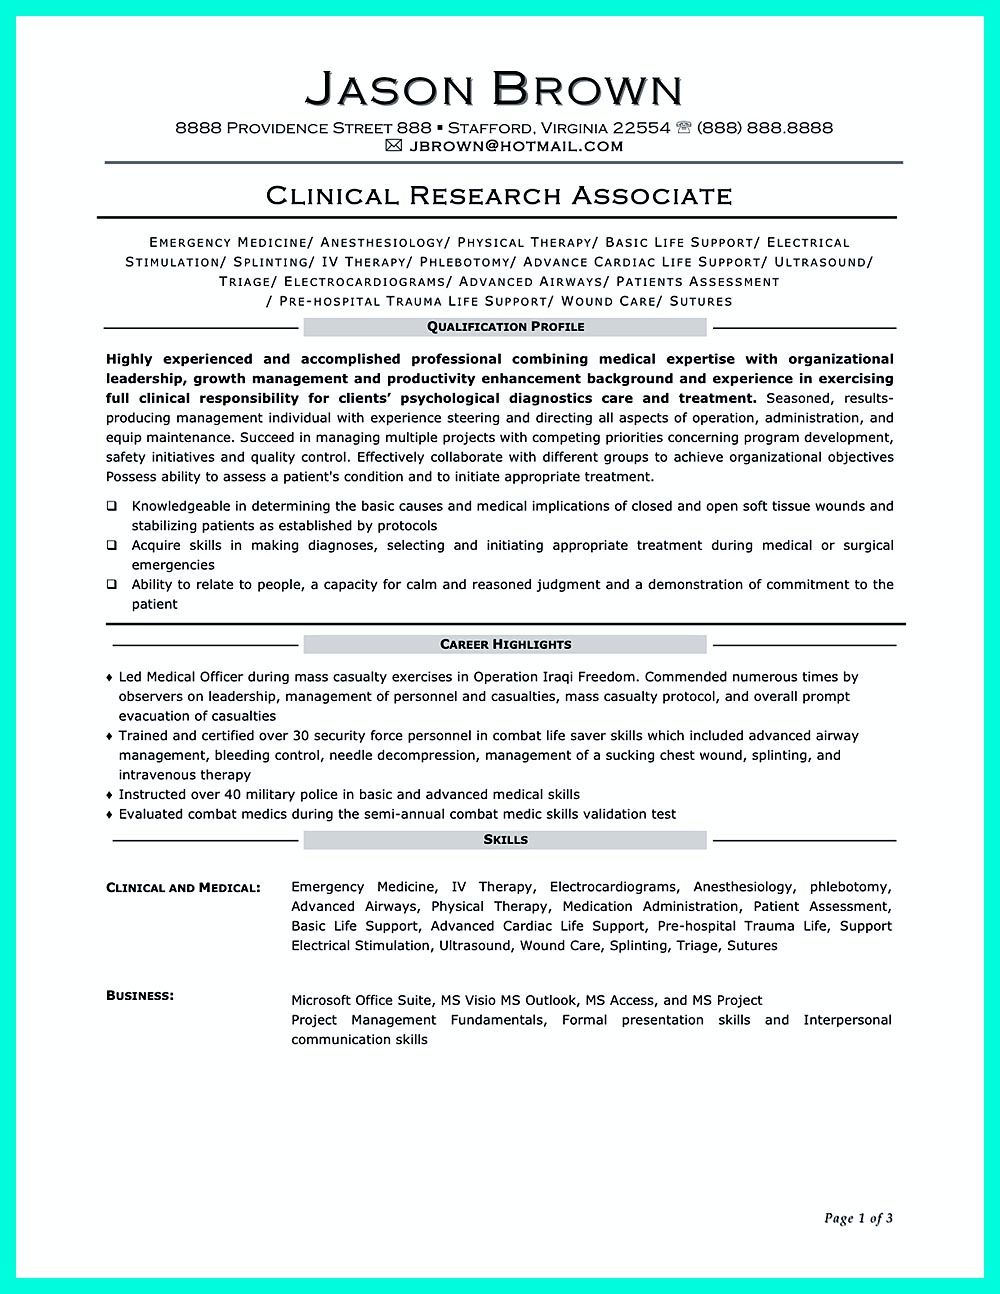 clinical research associate resume objectives are needed to convince